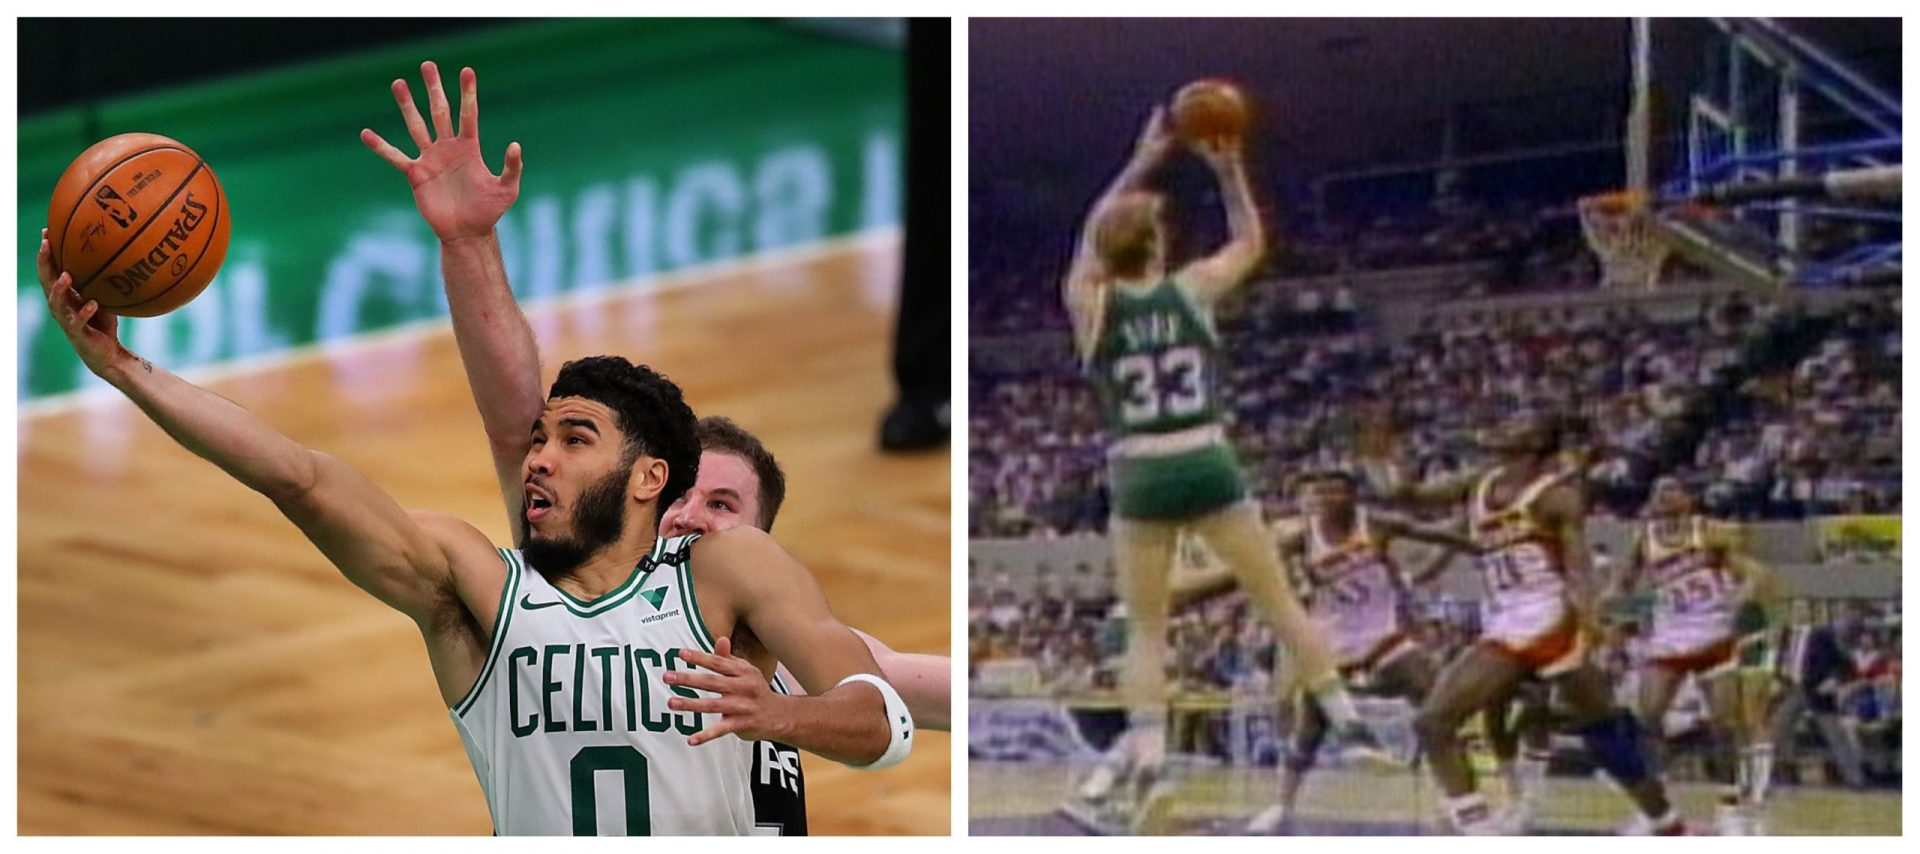 Jayson Tatum ties franchise record following sensational 60-point display in OT win against Spurs - THE SPORTS ROOM